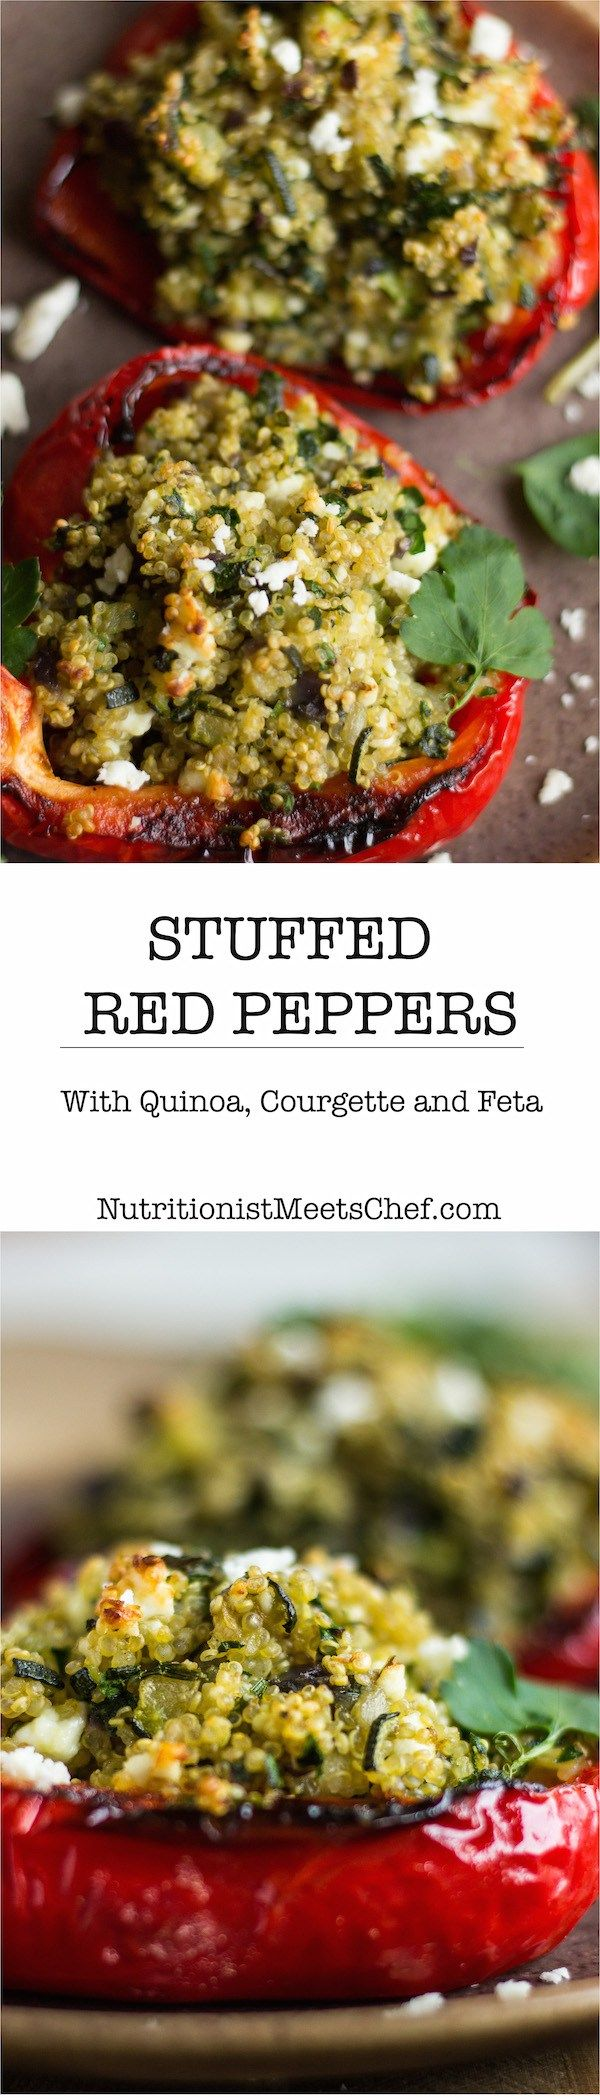 Stuffed Red Peppers with Quinoa, Courgette and Feta cheese, sprinkled with parsley and mint.